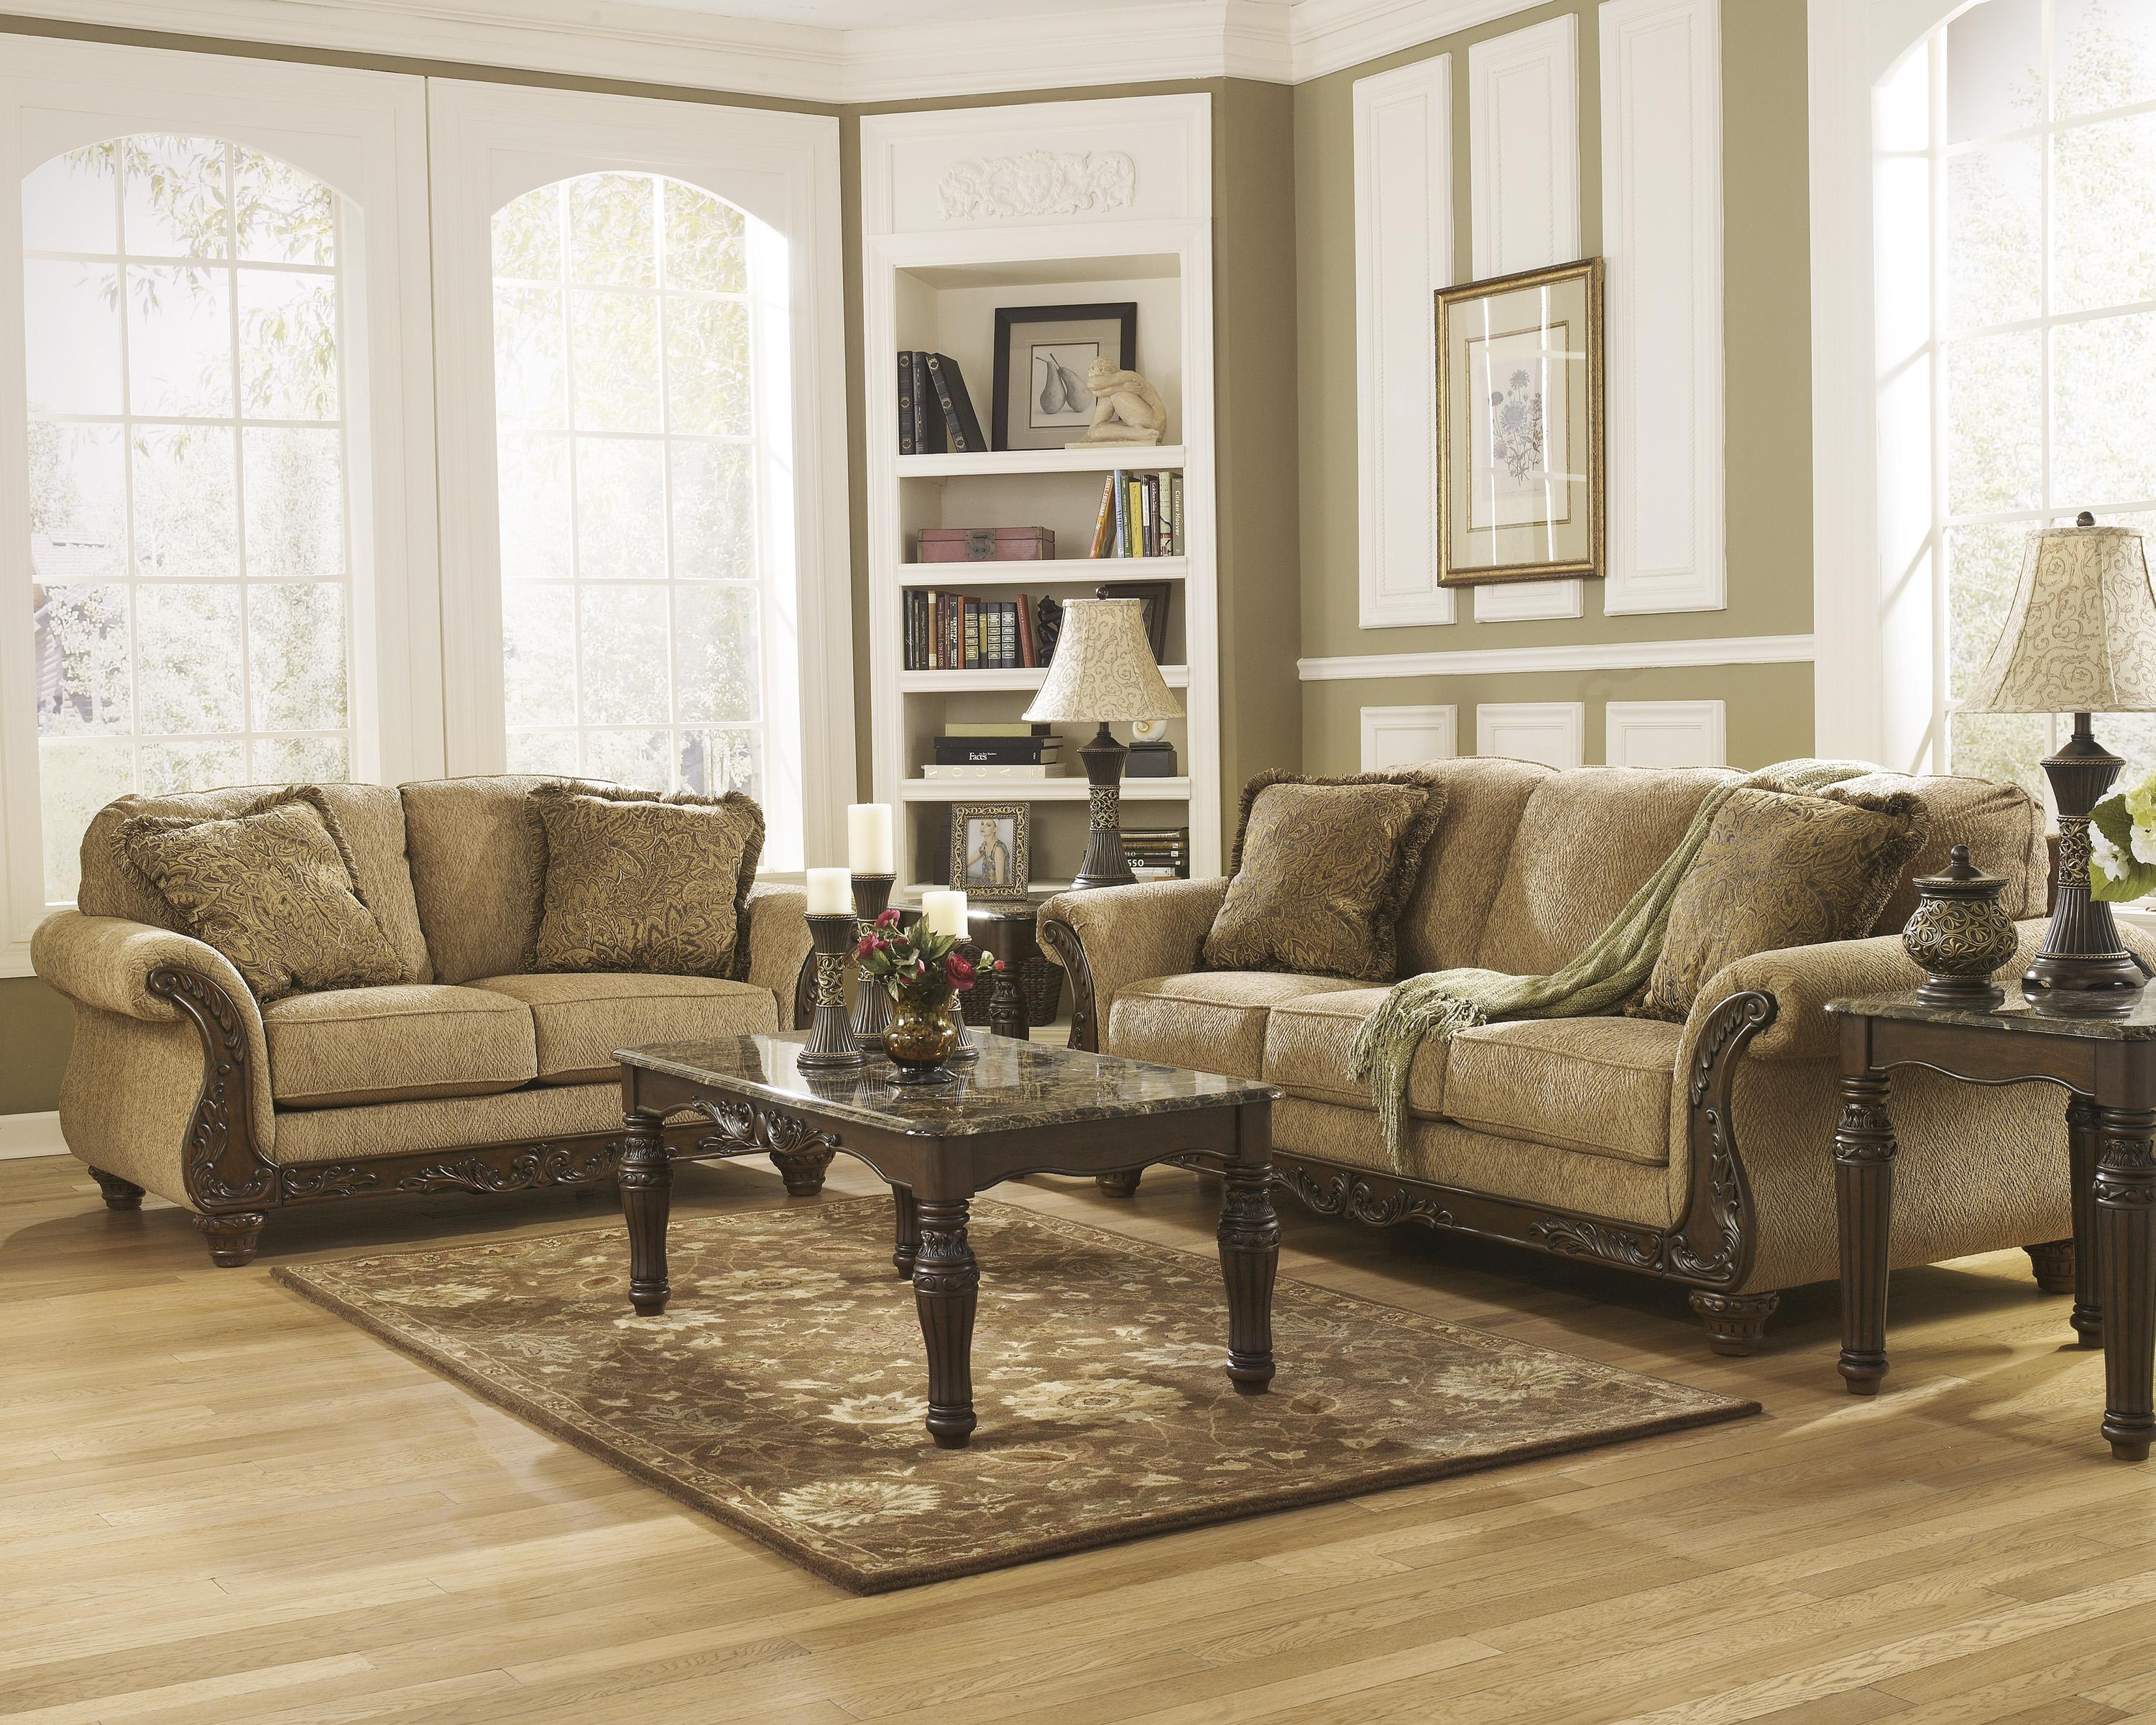 Signature Design by Ashley Cambridge - Amber Stationary Living Room Group - Item Number: 39401 Living Room Group 1